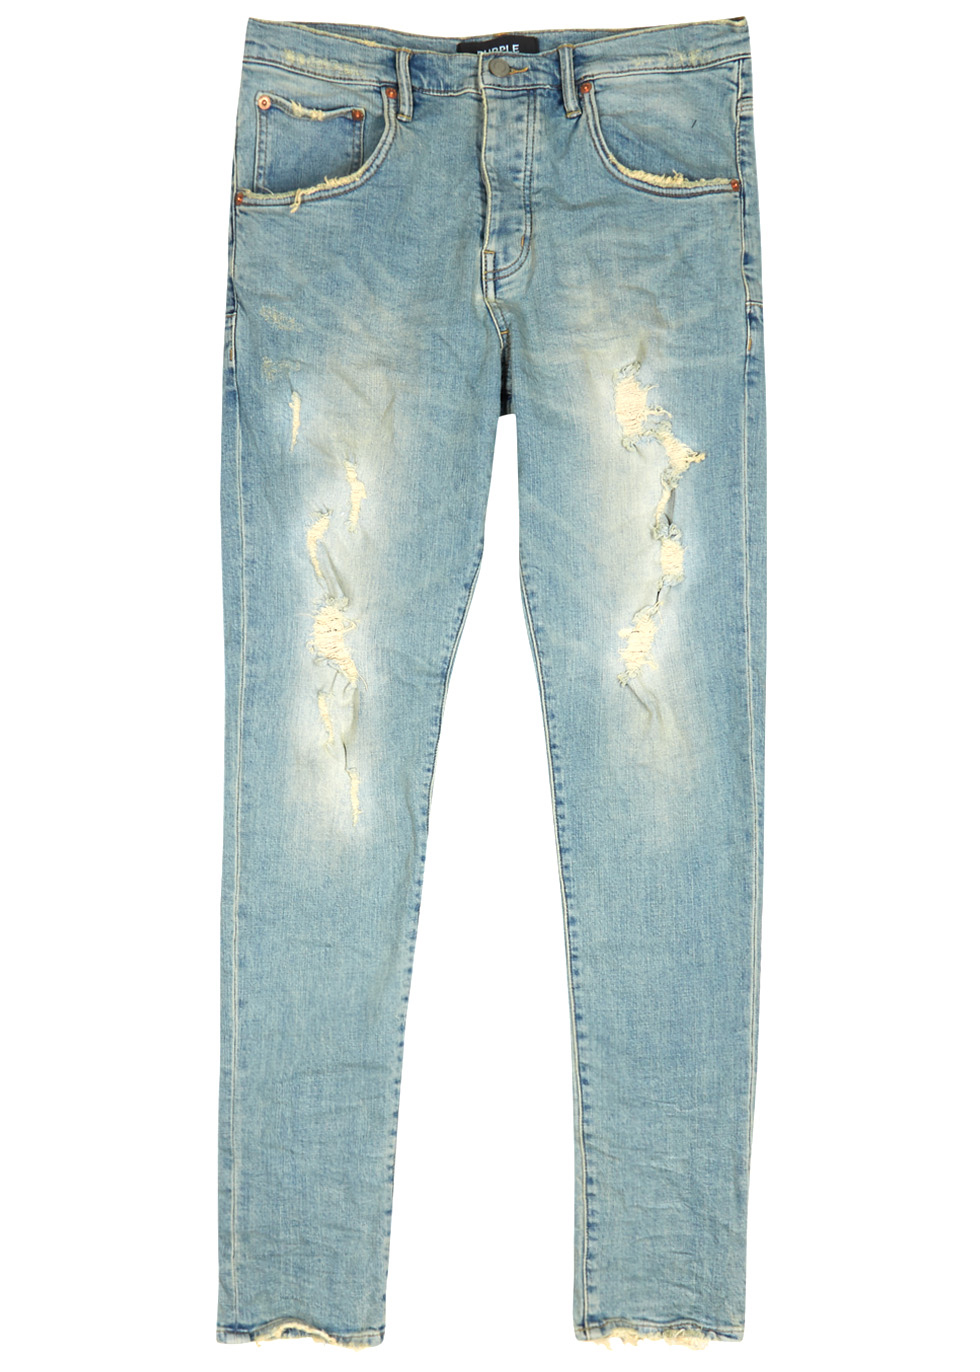 PURPLE 001 Distressed Skinny Jeans in Blue